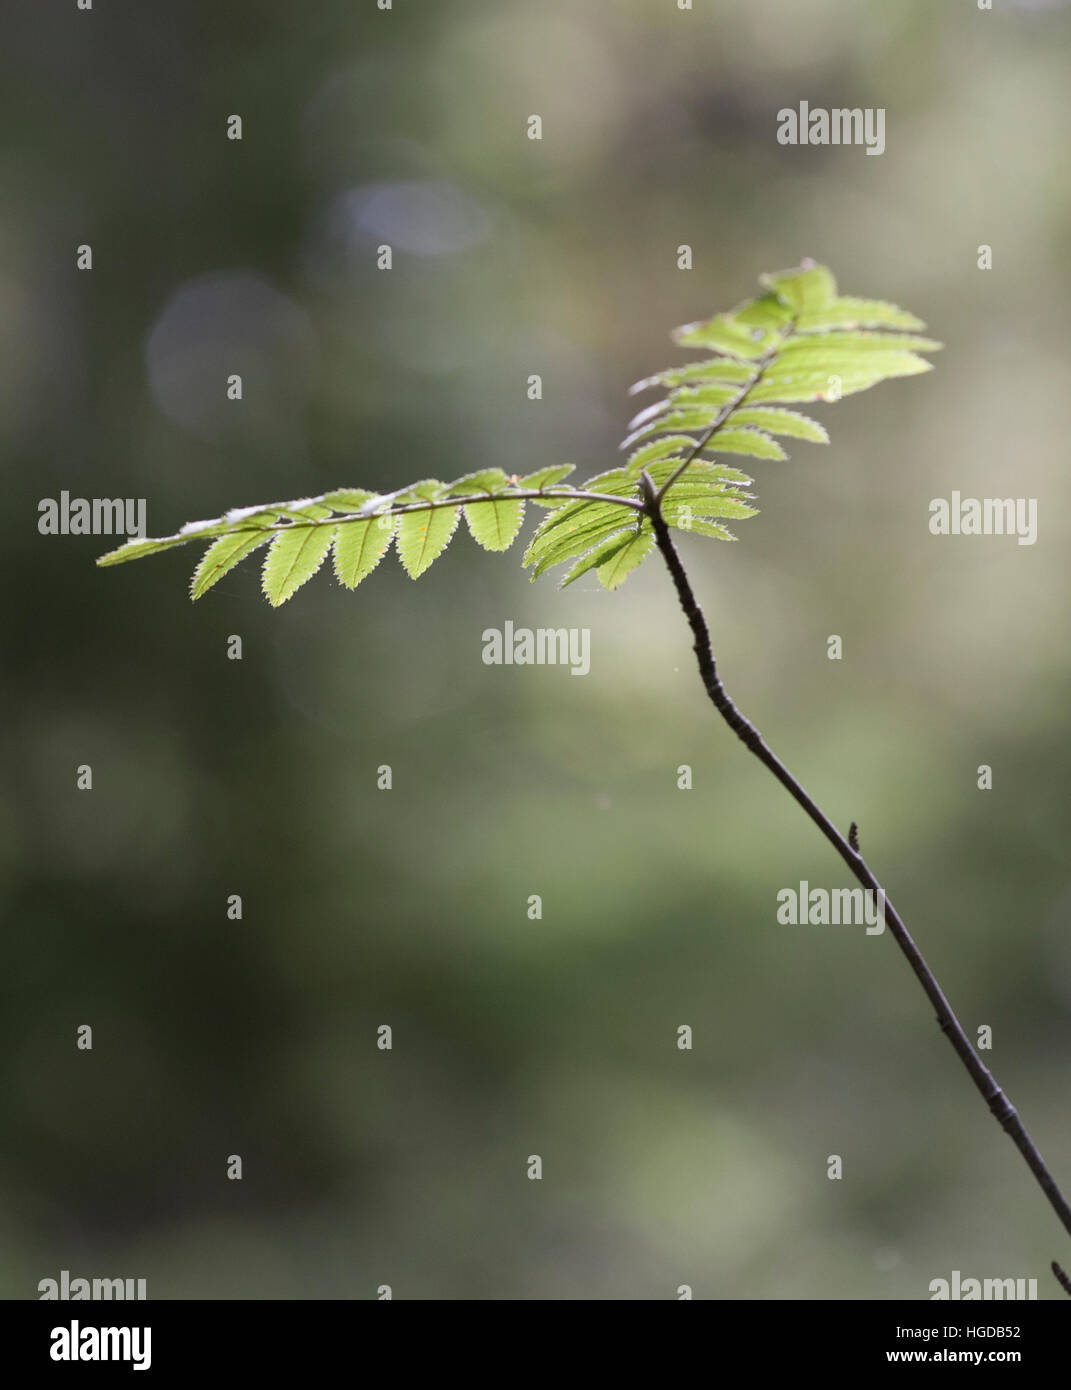 ROWAN BRANCH with leaves - Stock Image